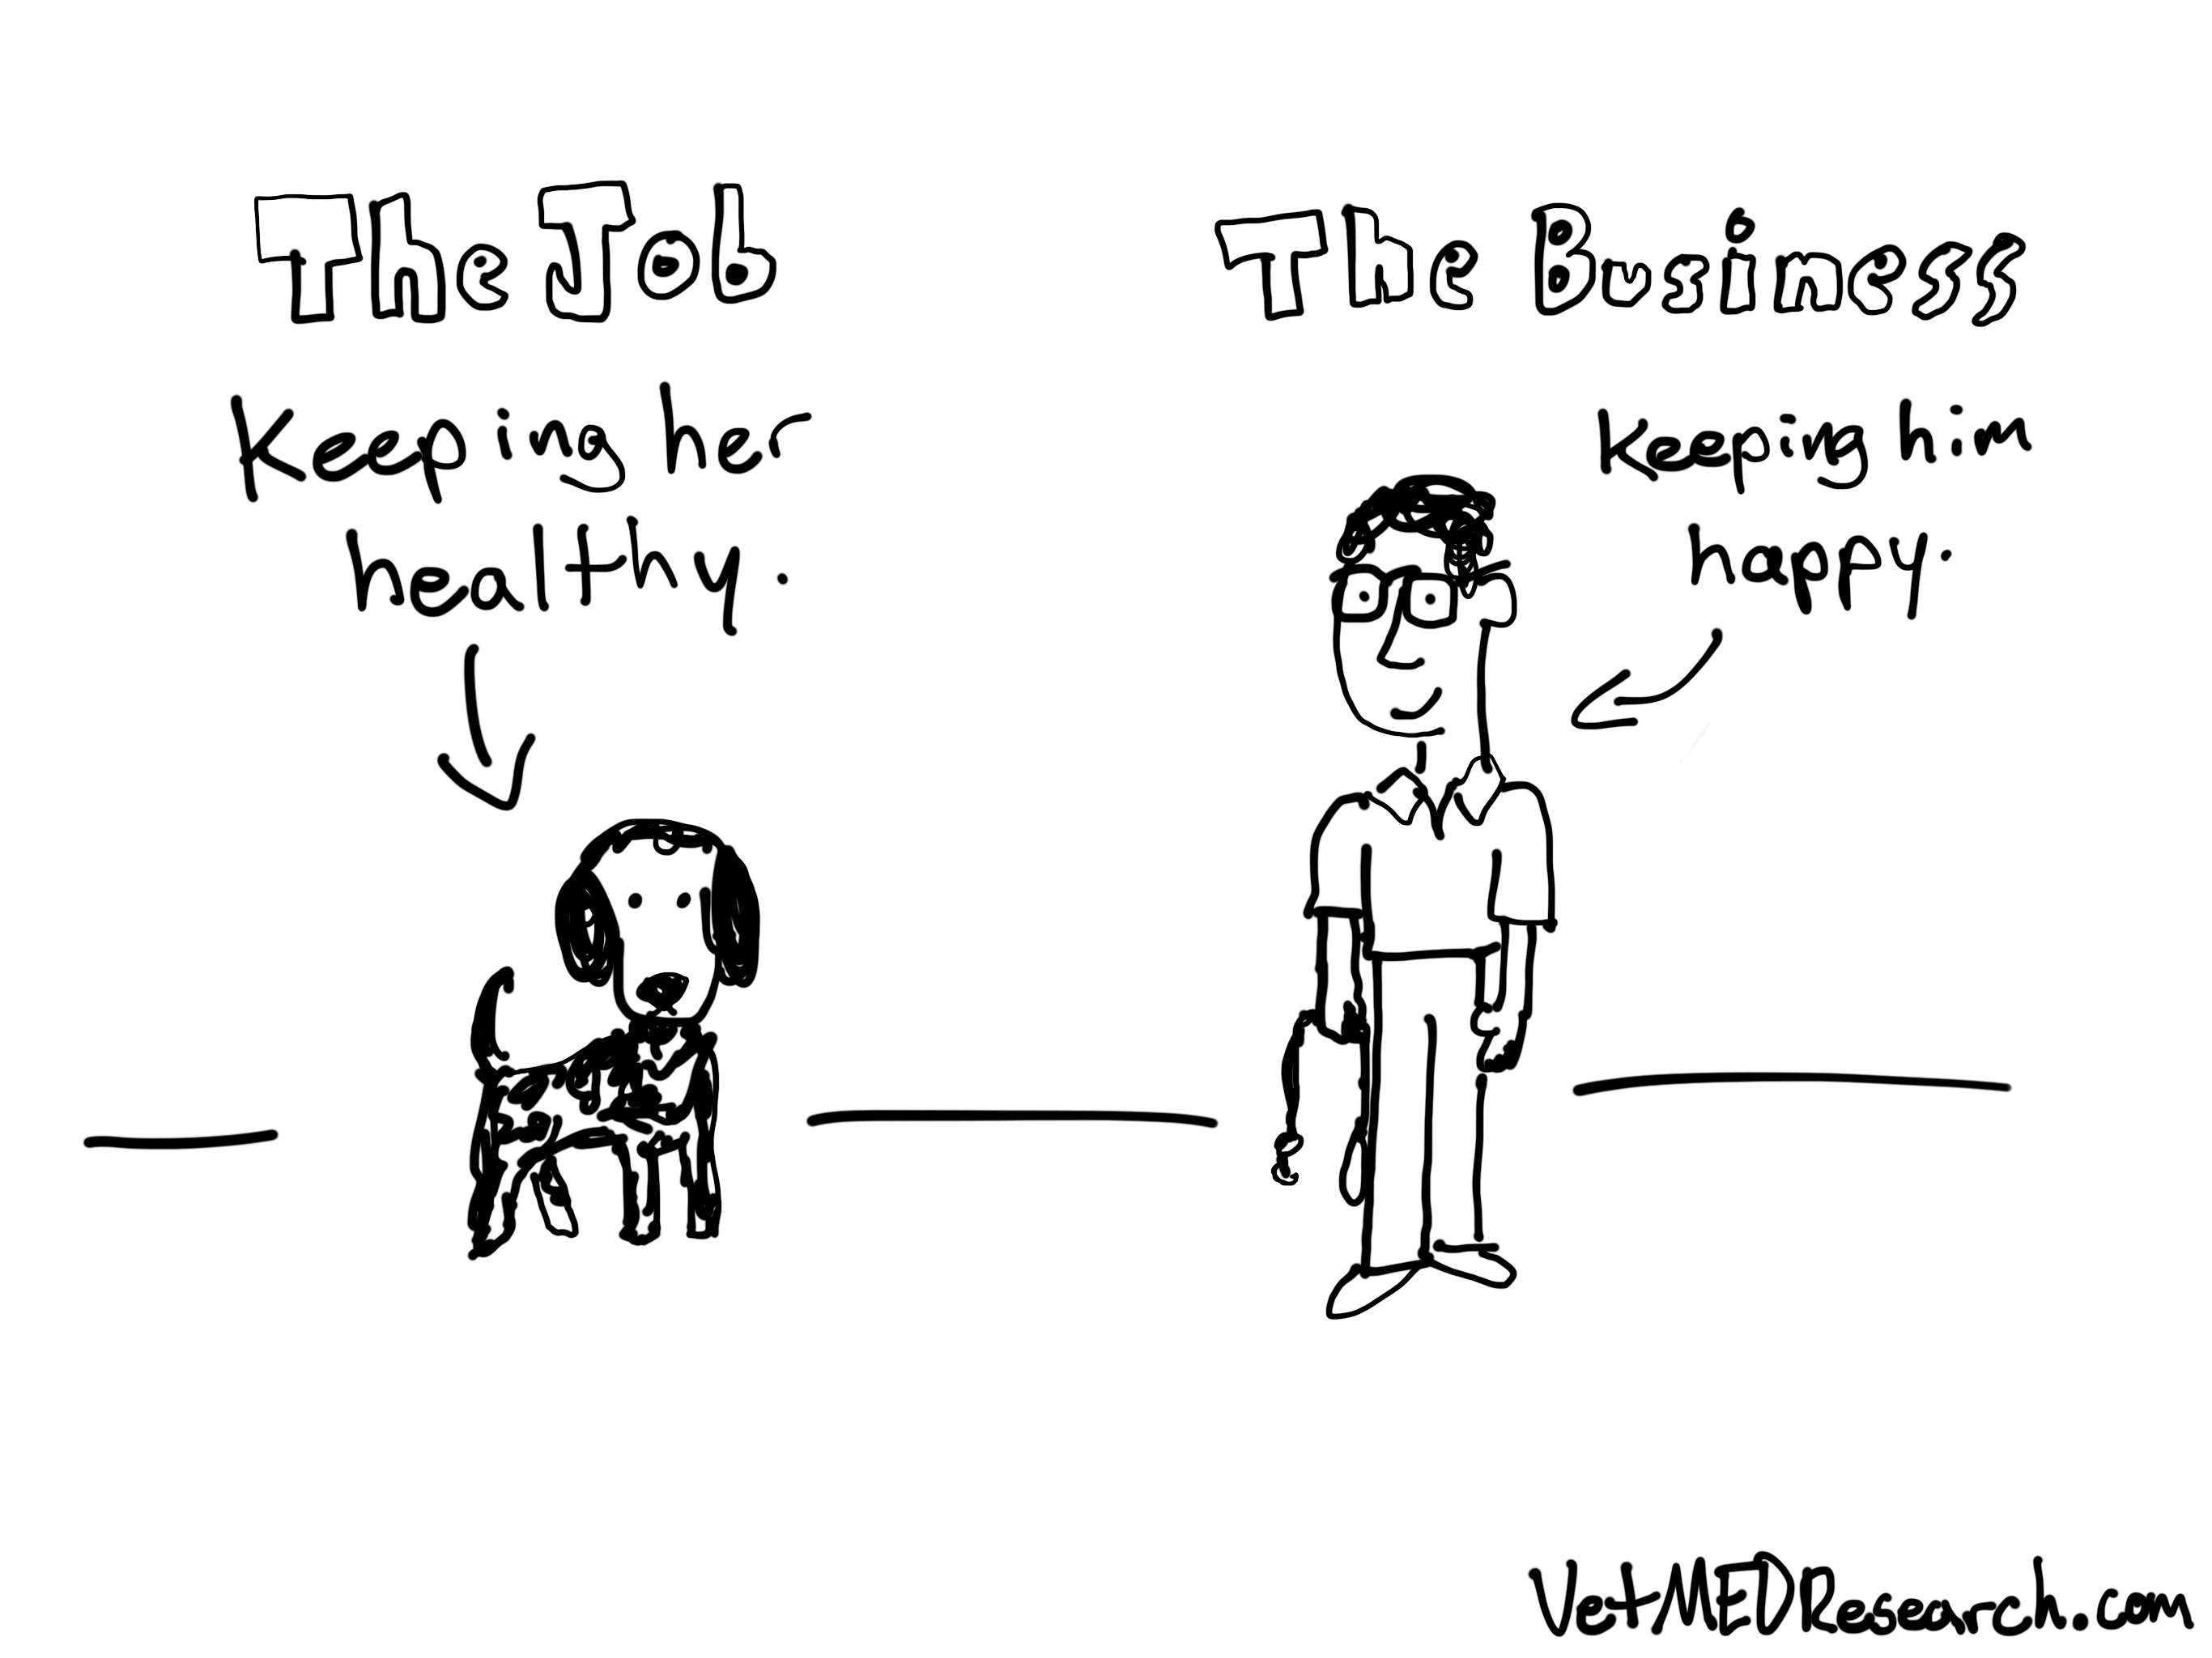 VetMEDResearch Veterinary Business Cartoon